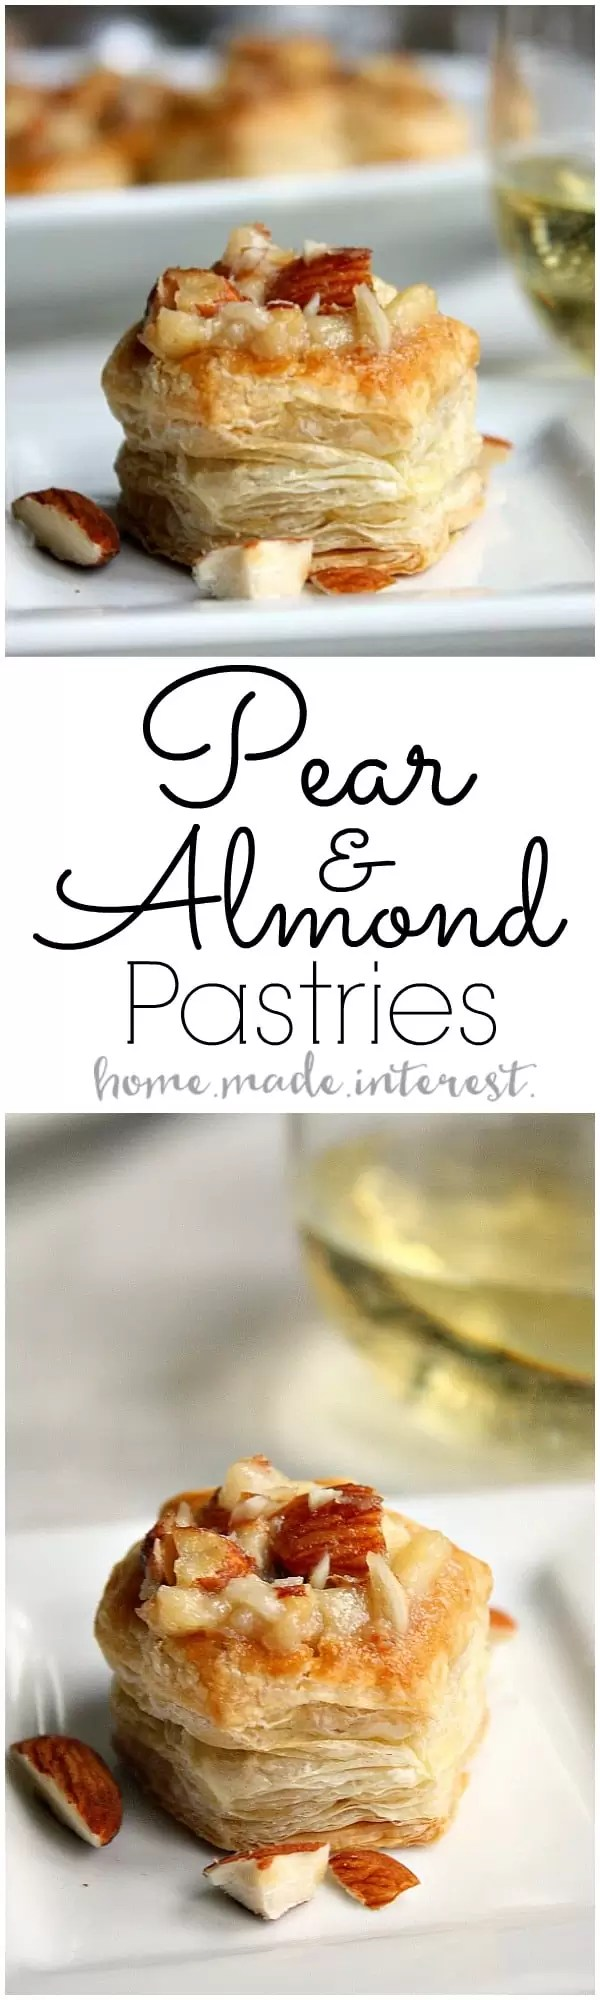 Our Wine Pairing Party was all about trying new foods and tasting new wines. These Pear and Almond Pastries paired with white wine perfectly! They were an easy bite size dessert that everyone loved!